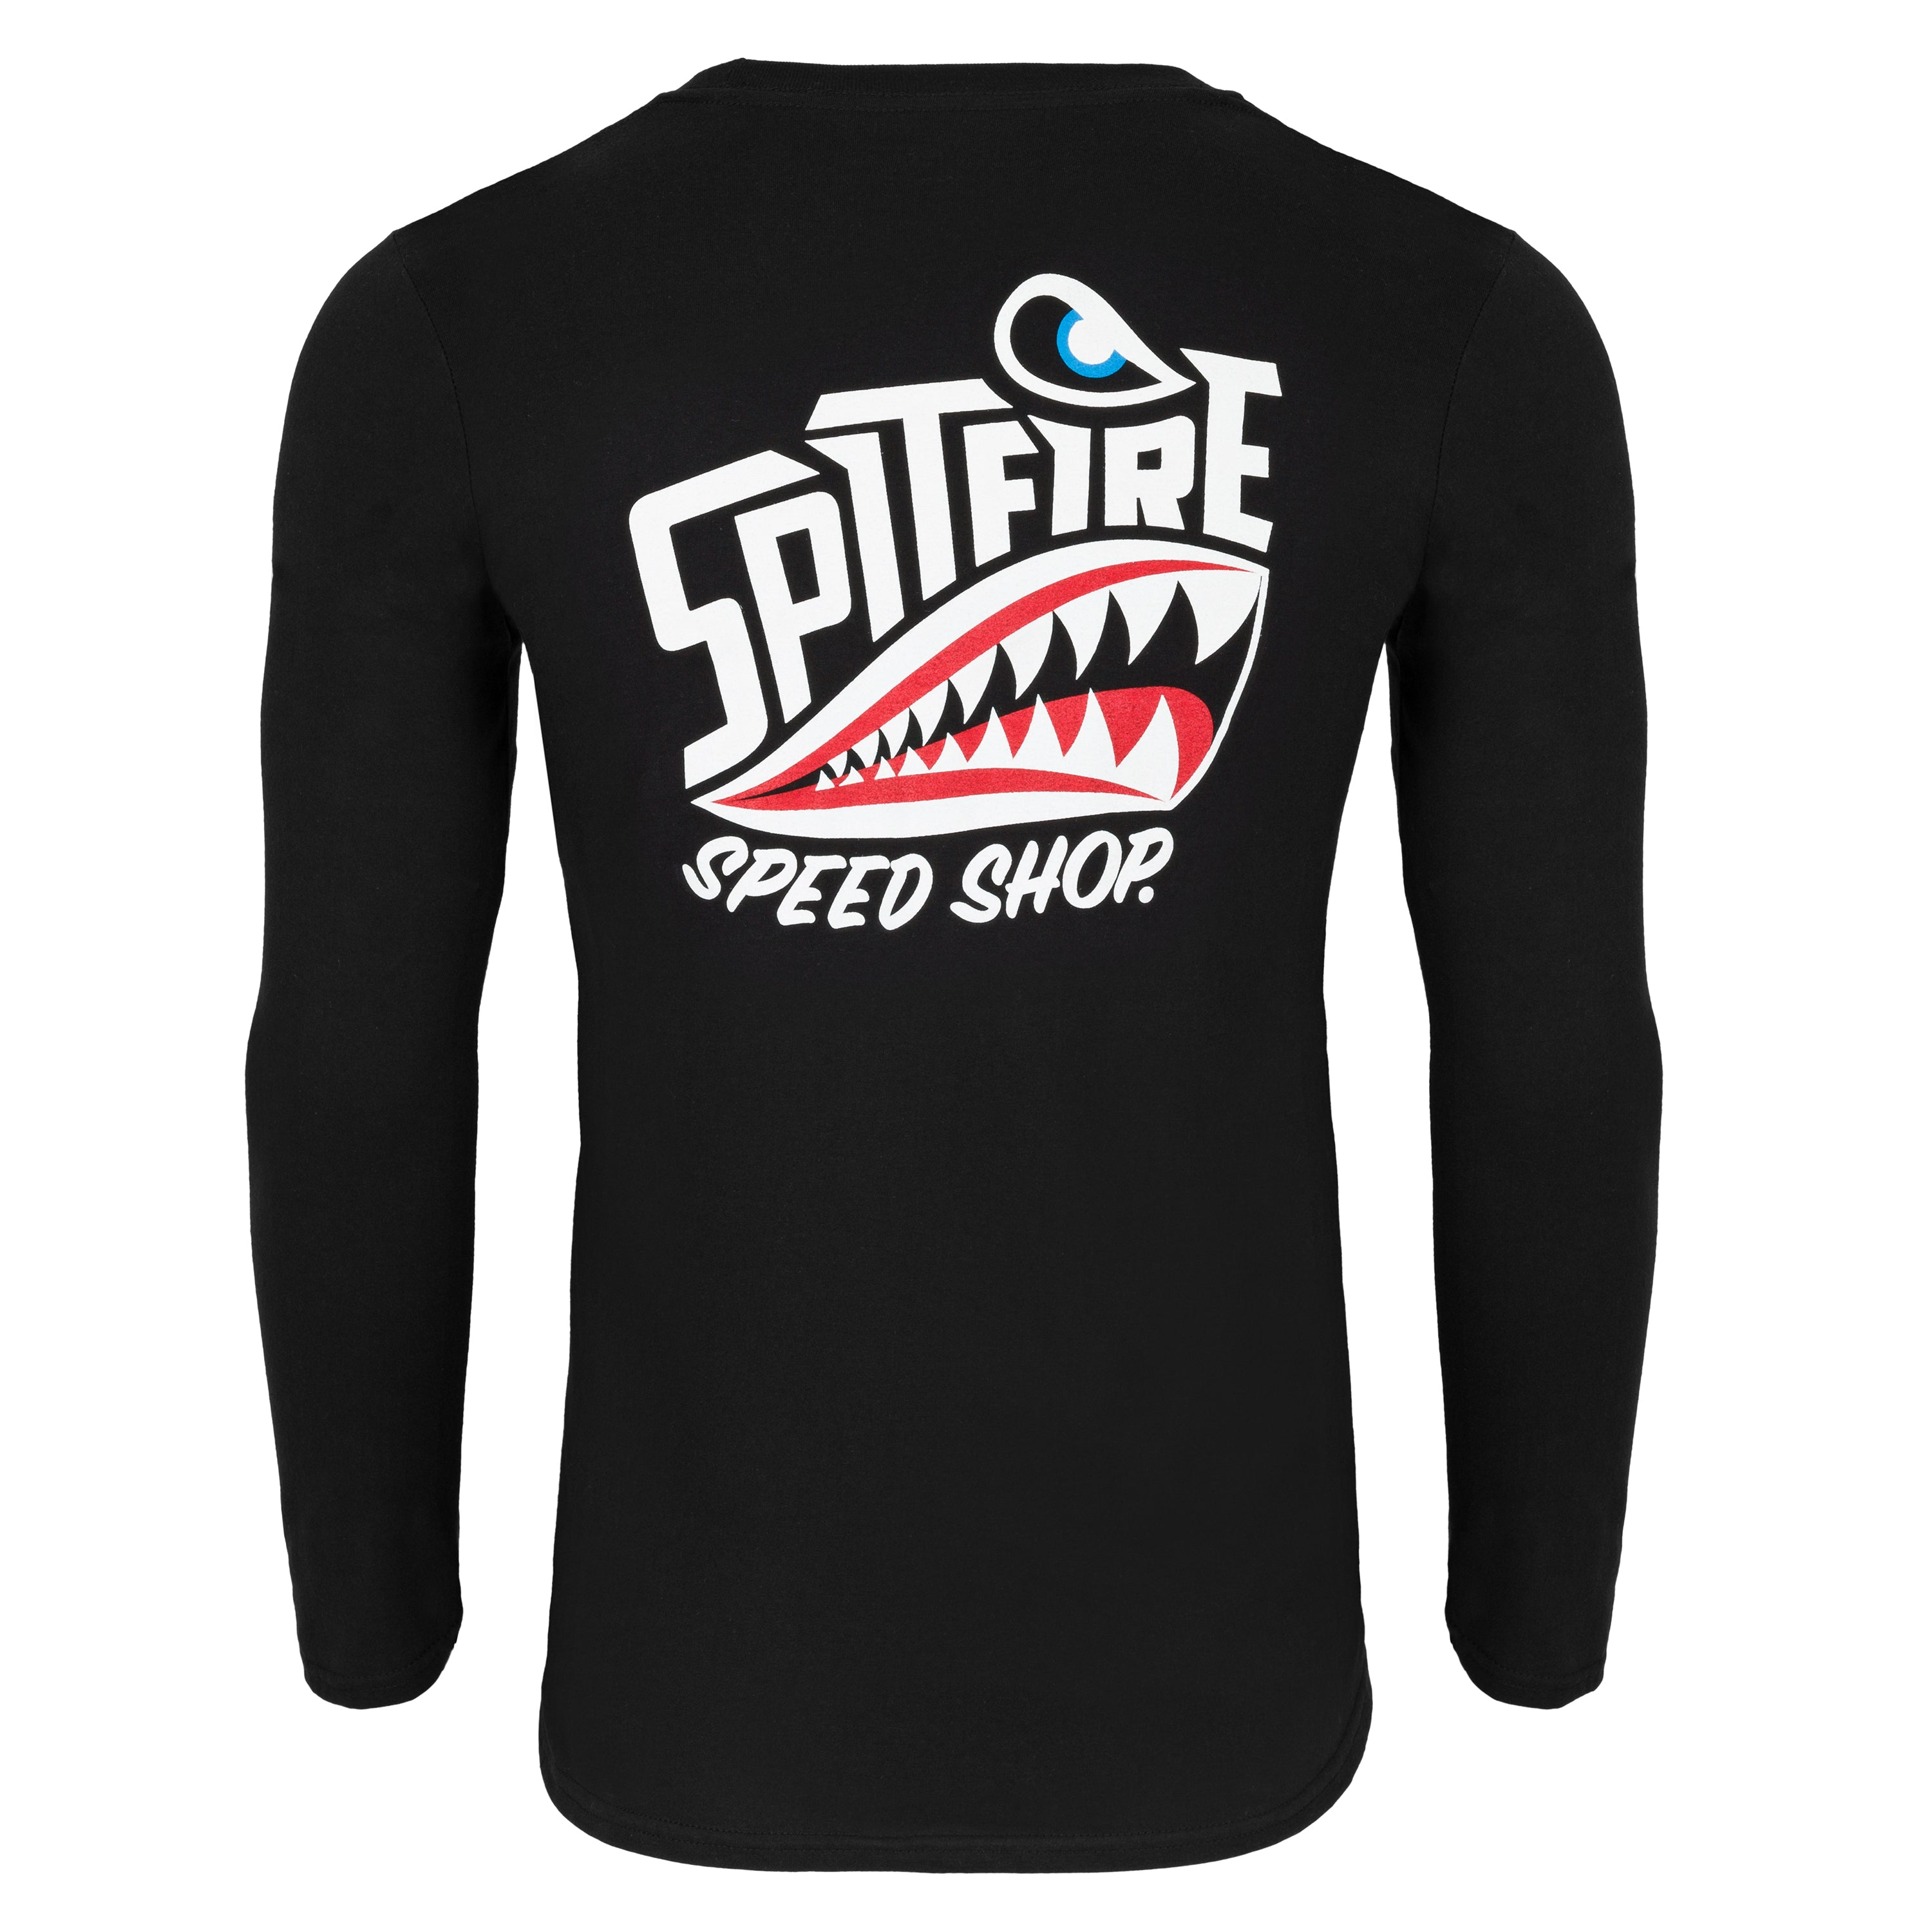 spitfire speed shop longsleeve skater T-Shirt